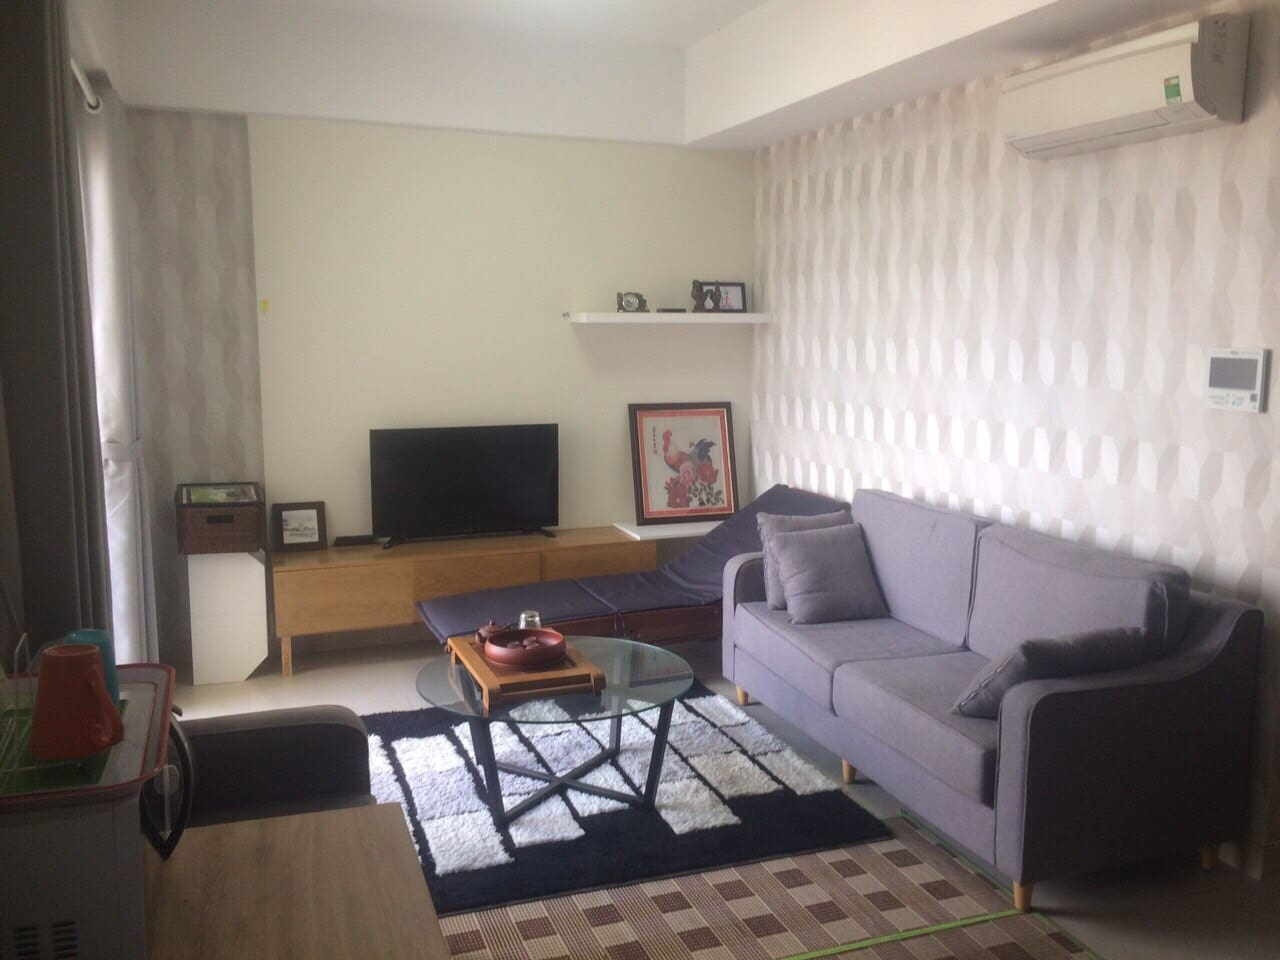 Comfort living room equipped with FPT play cable